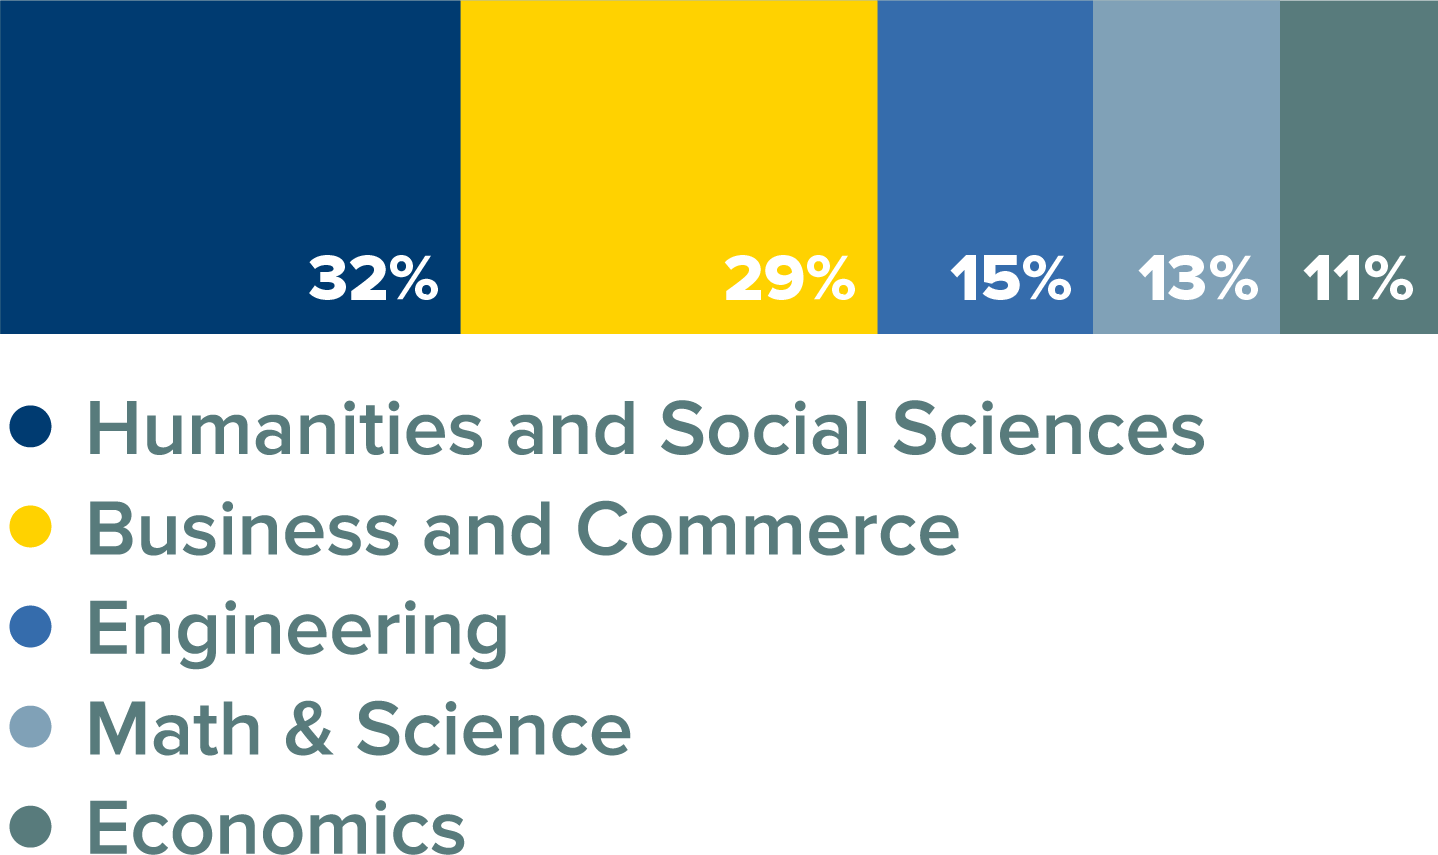 MBA Class Percentage by Major Bar Graph. 32% humanities and social sciences; 29% business and commerce; 15% engineering; 13% math and science; 11% economics.